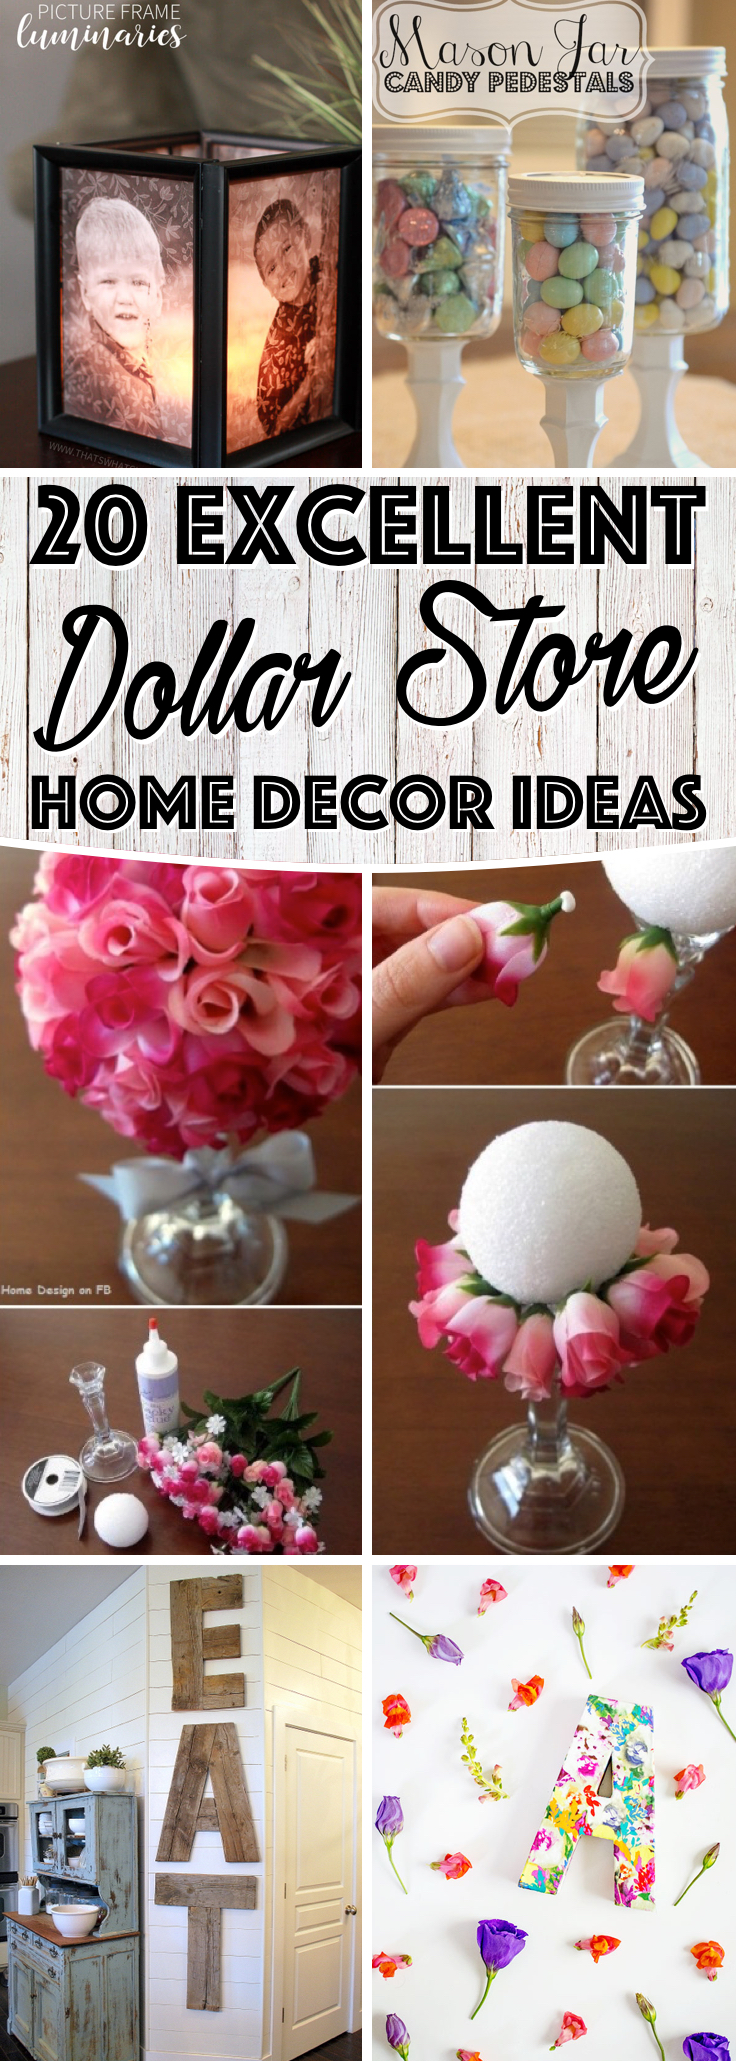 20 excellent dollar store home decor ideas for Best home decor ideas